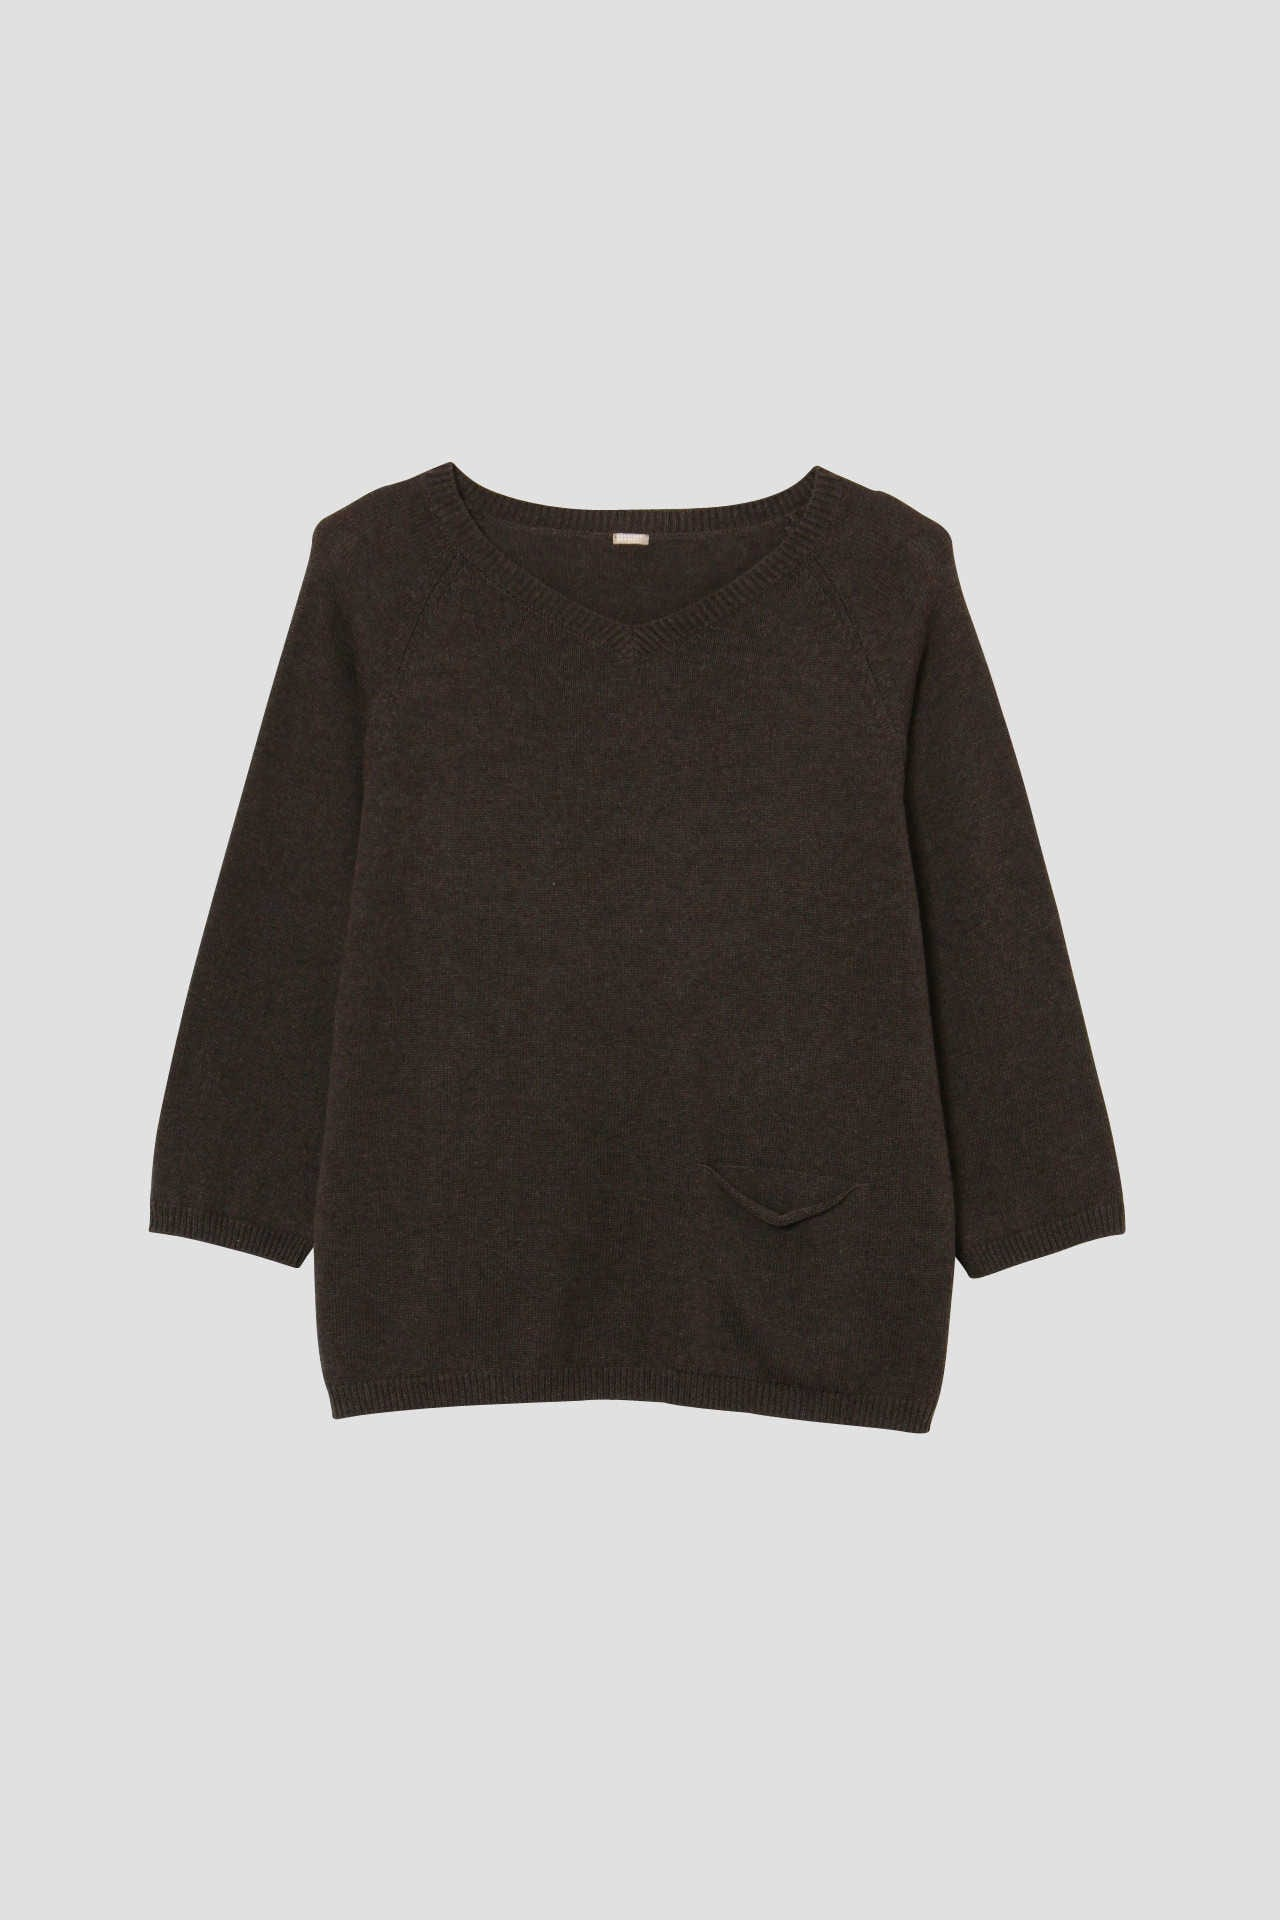 COTTON JUMPER5